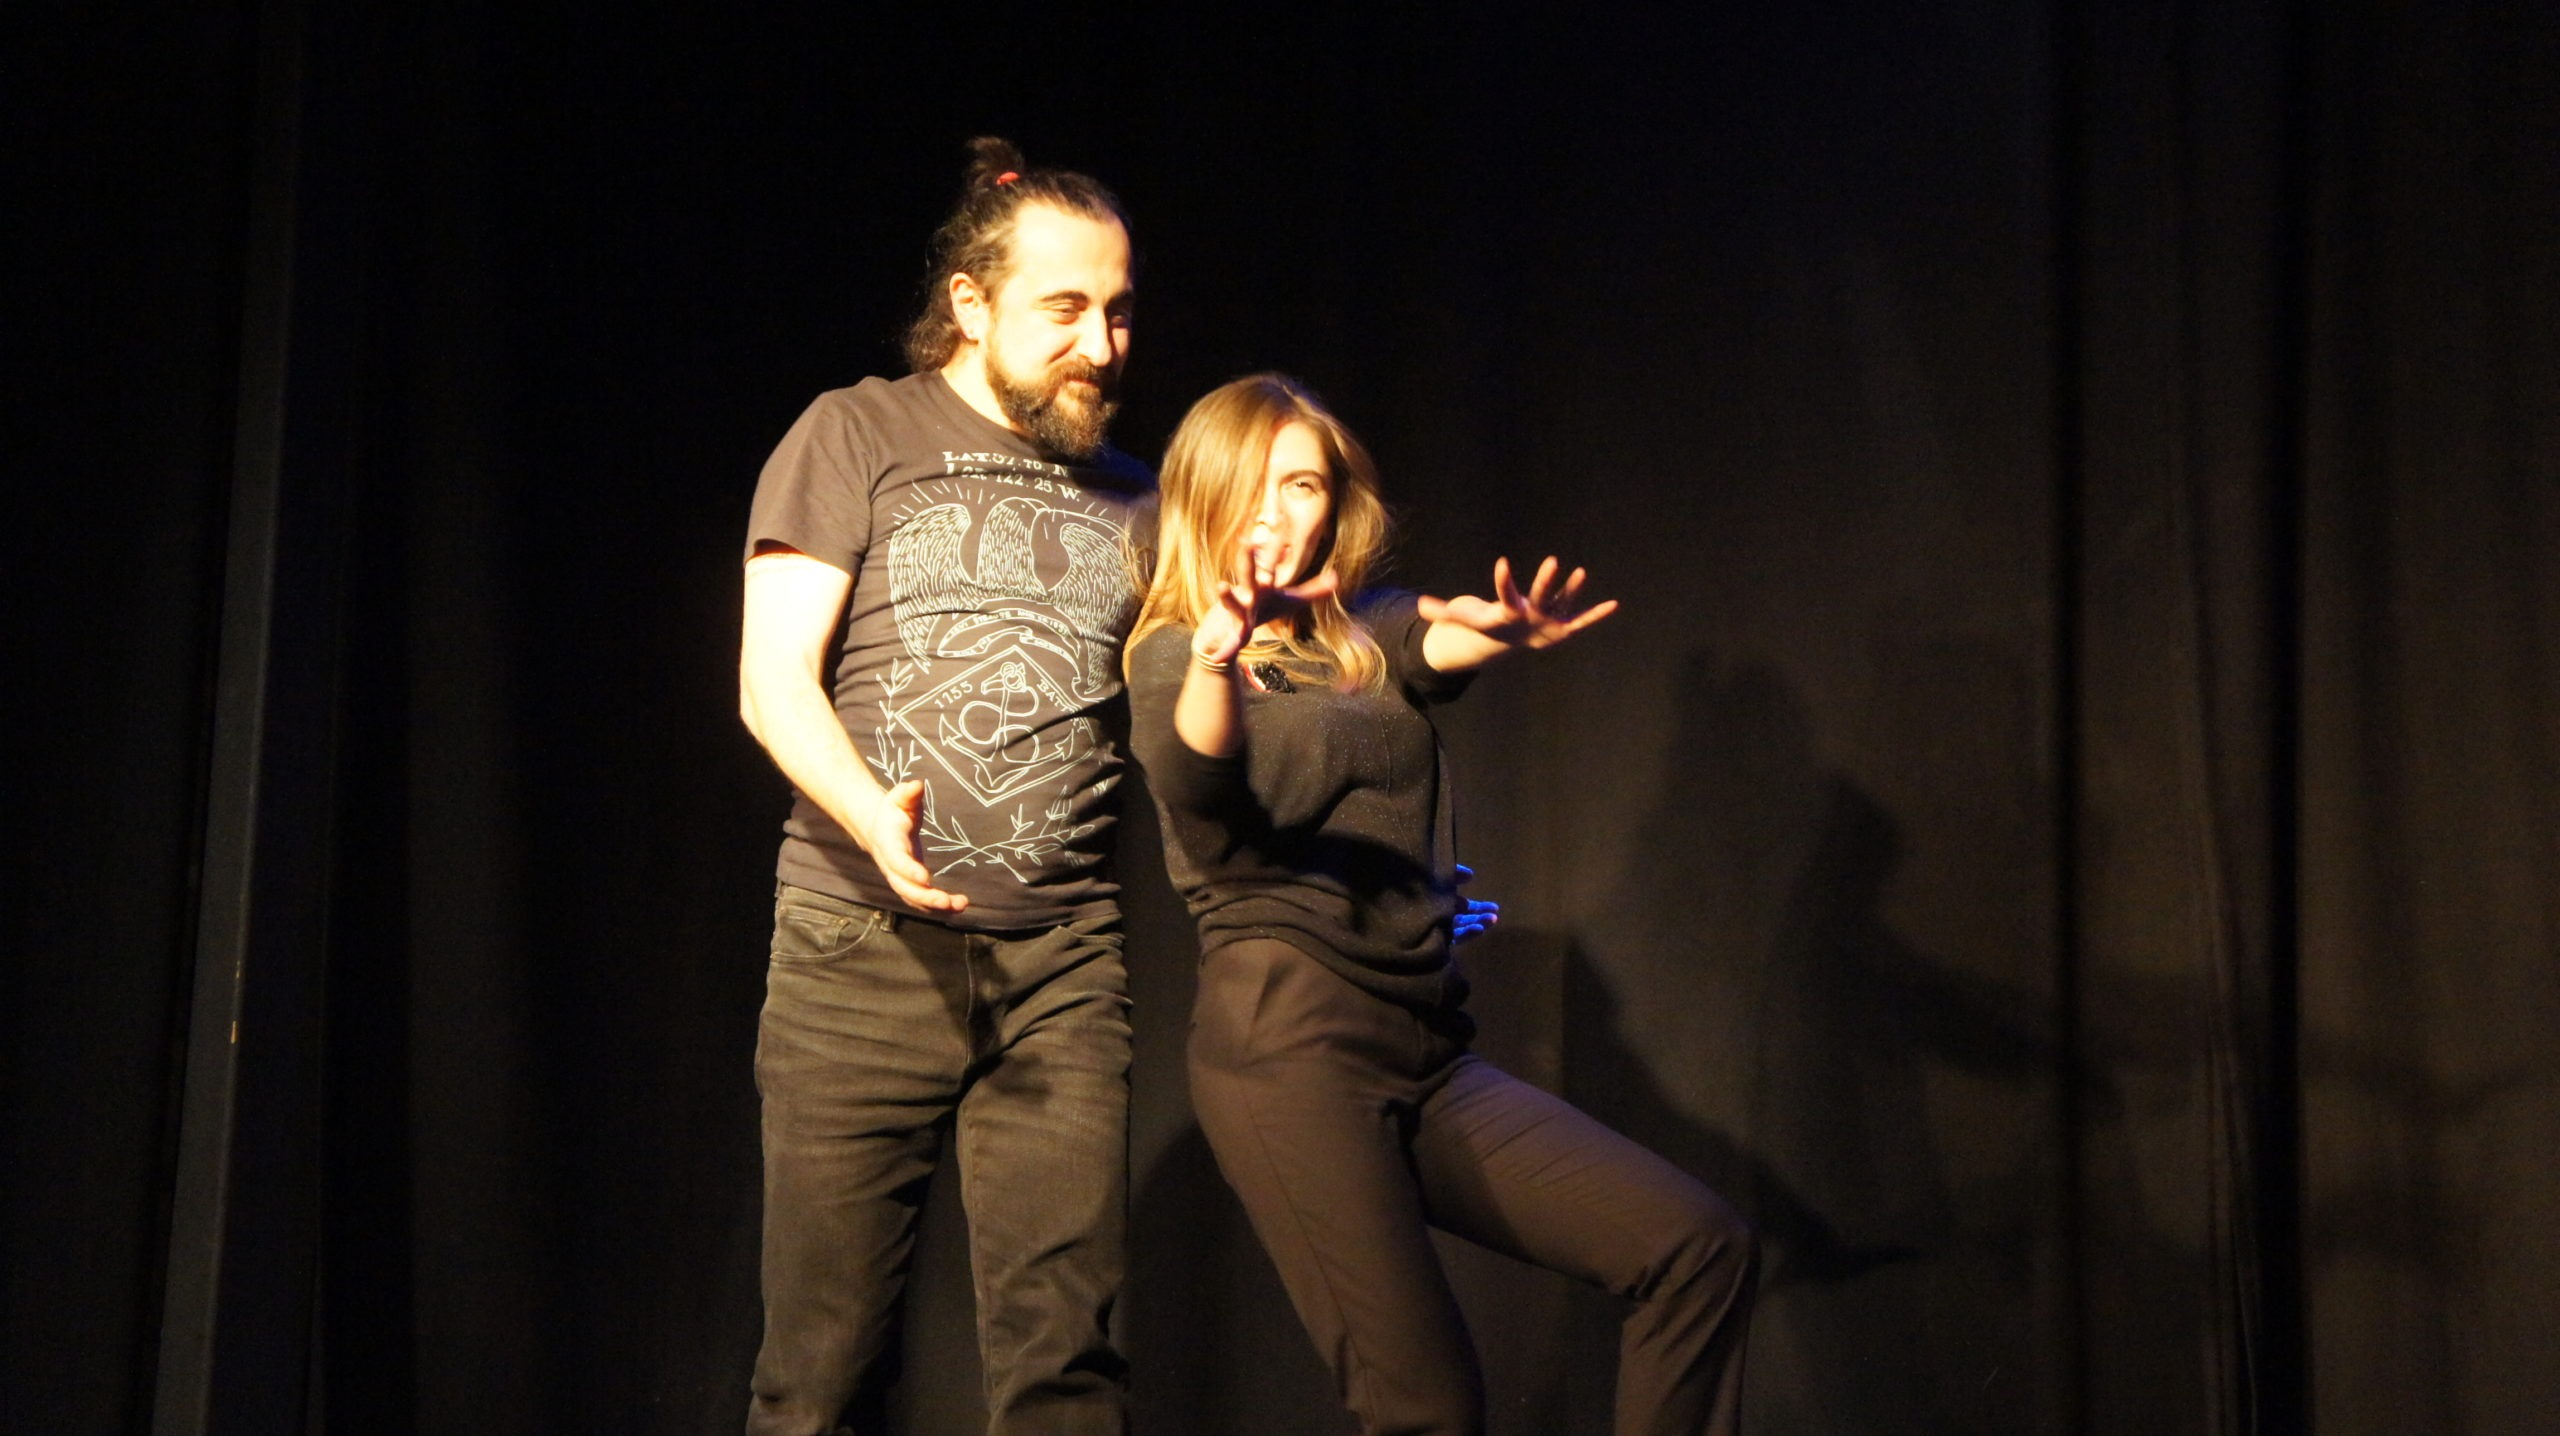 Act Attack's improv and physical show. A man and a woman on stage wearing black. The woman is posing or reaching her arms to show something, the man looks at her grinning